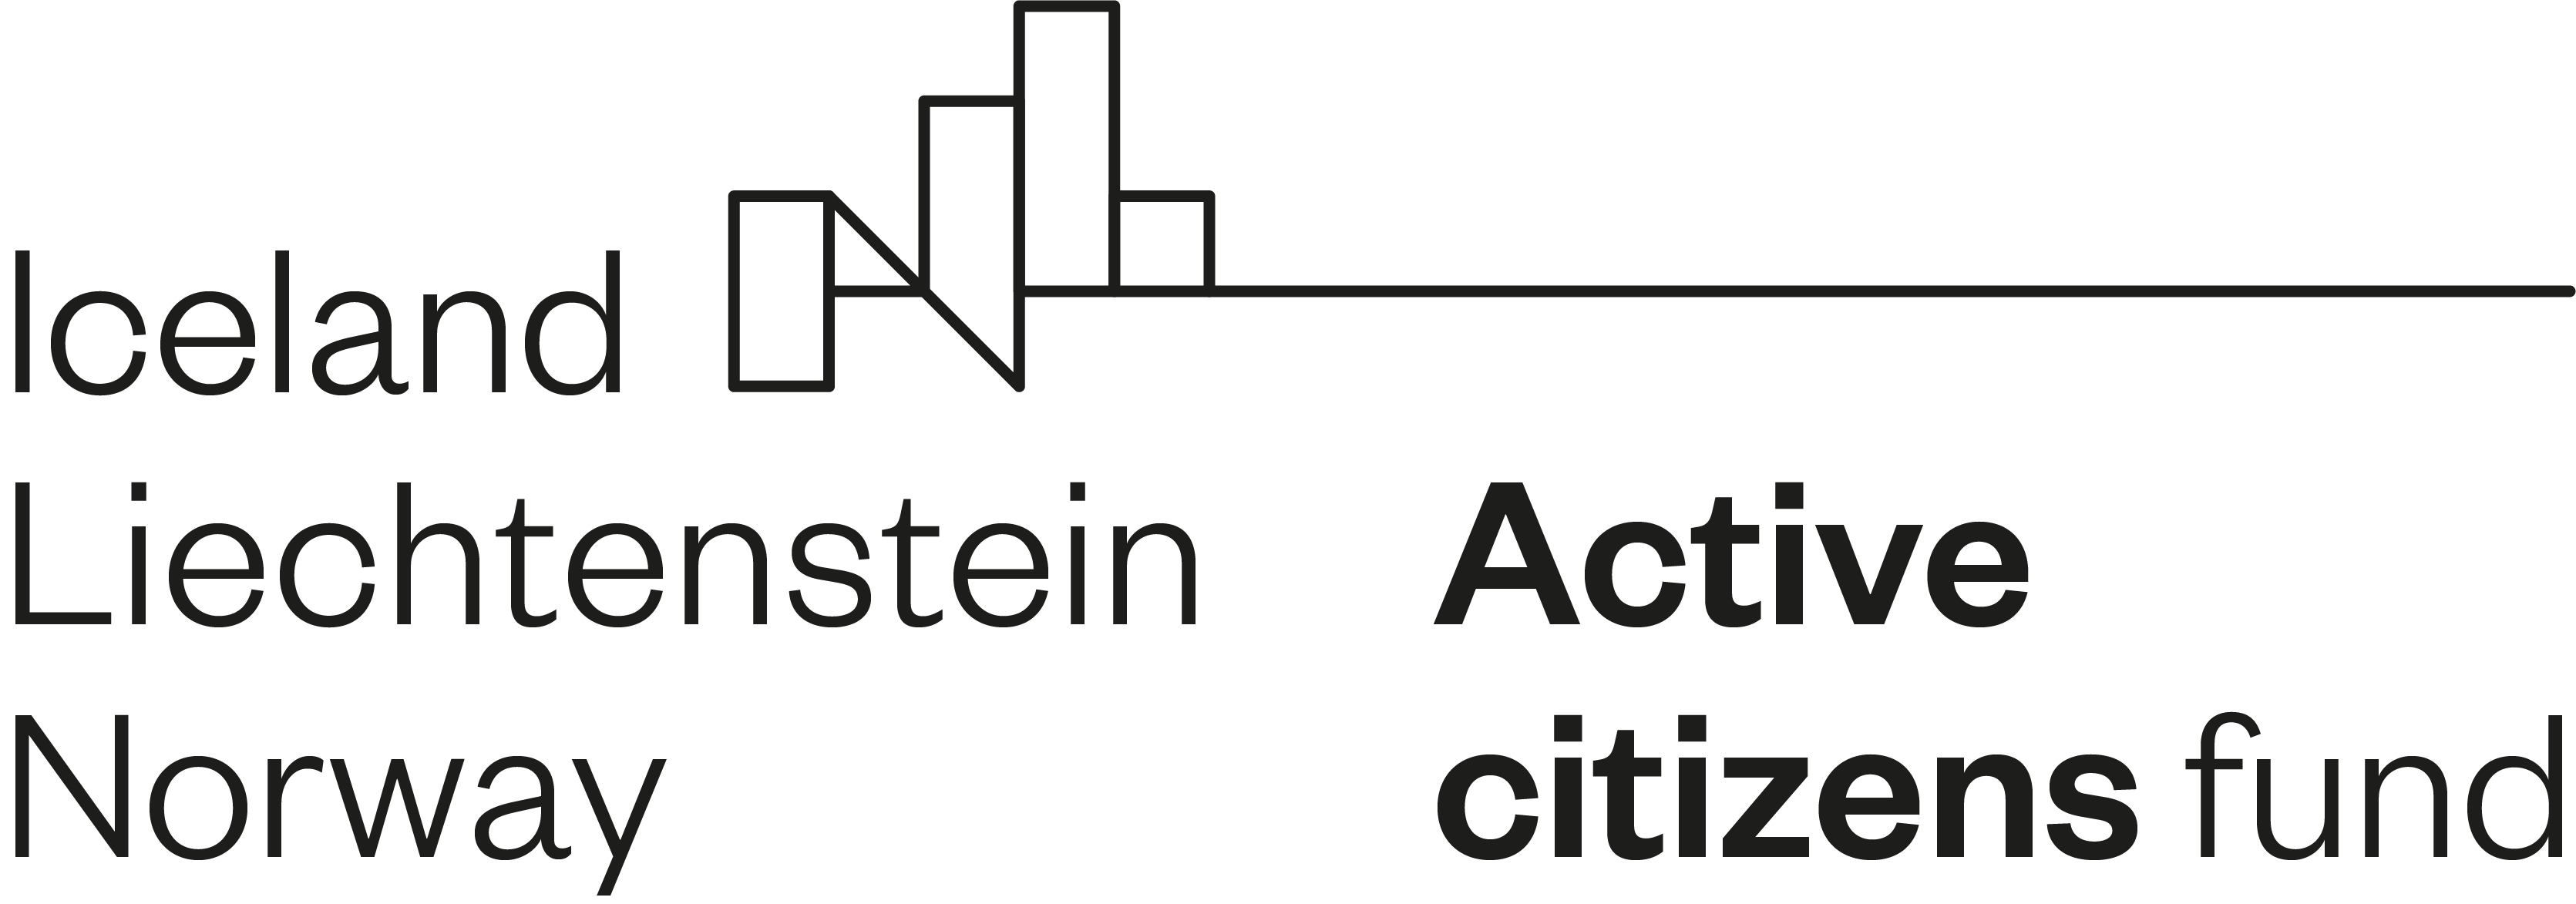 Active-citizens-fund@4x (1)